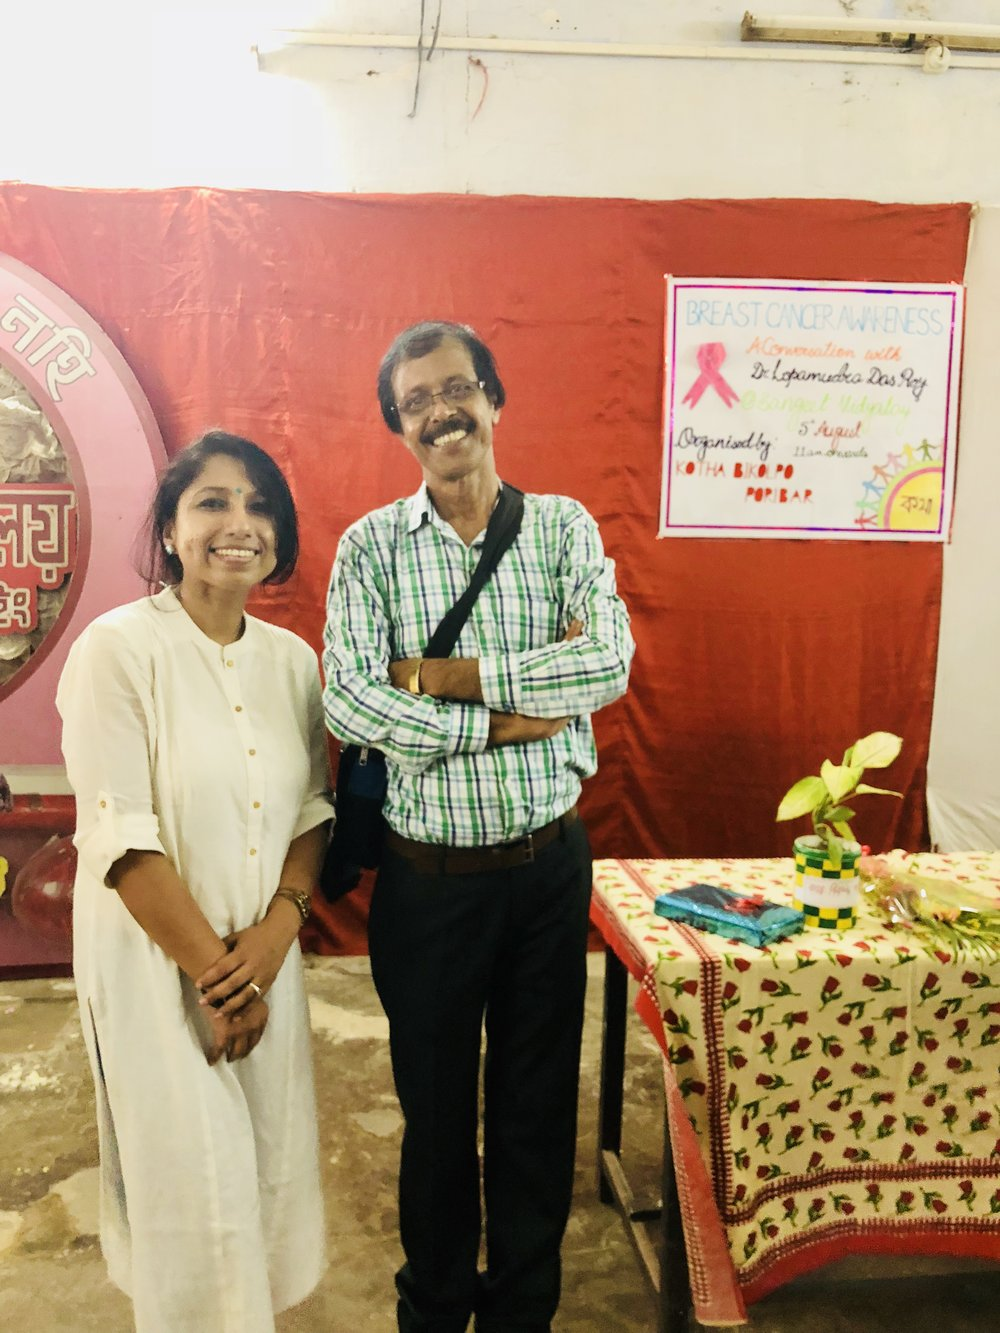 Sincerely thankful to Mr. Kamal Chakraborty, integral part of Katha Bikalpa Parivaar along with the vibrant, thoughtful young generation for organizing the Breast Cancer Awareness event on 5th August, 2018.